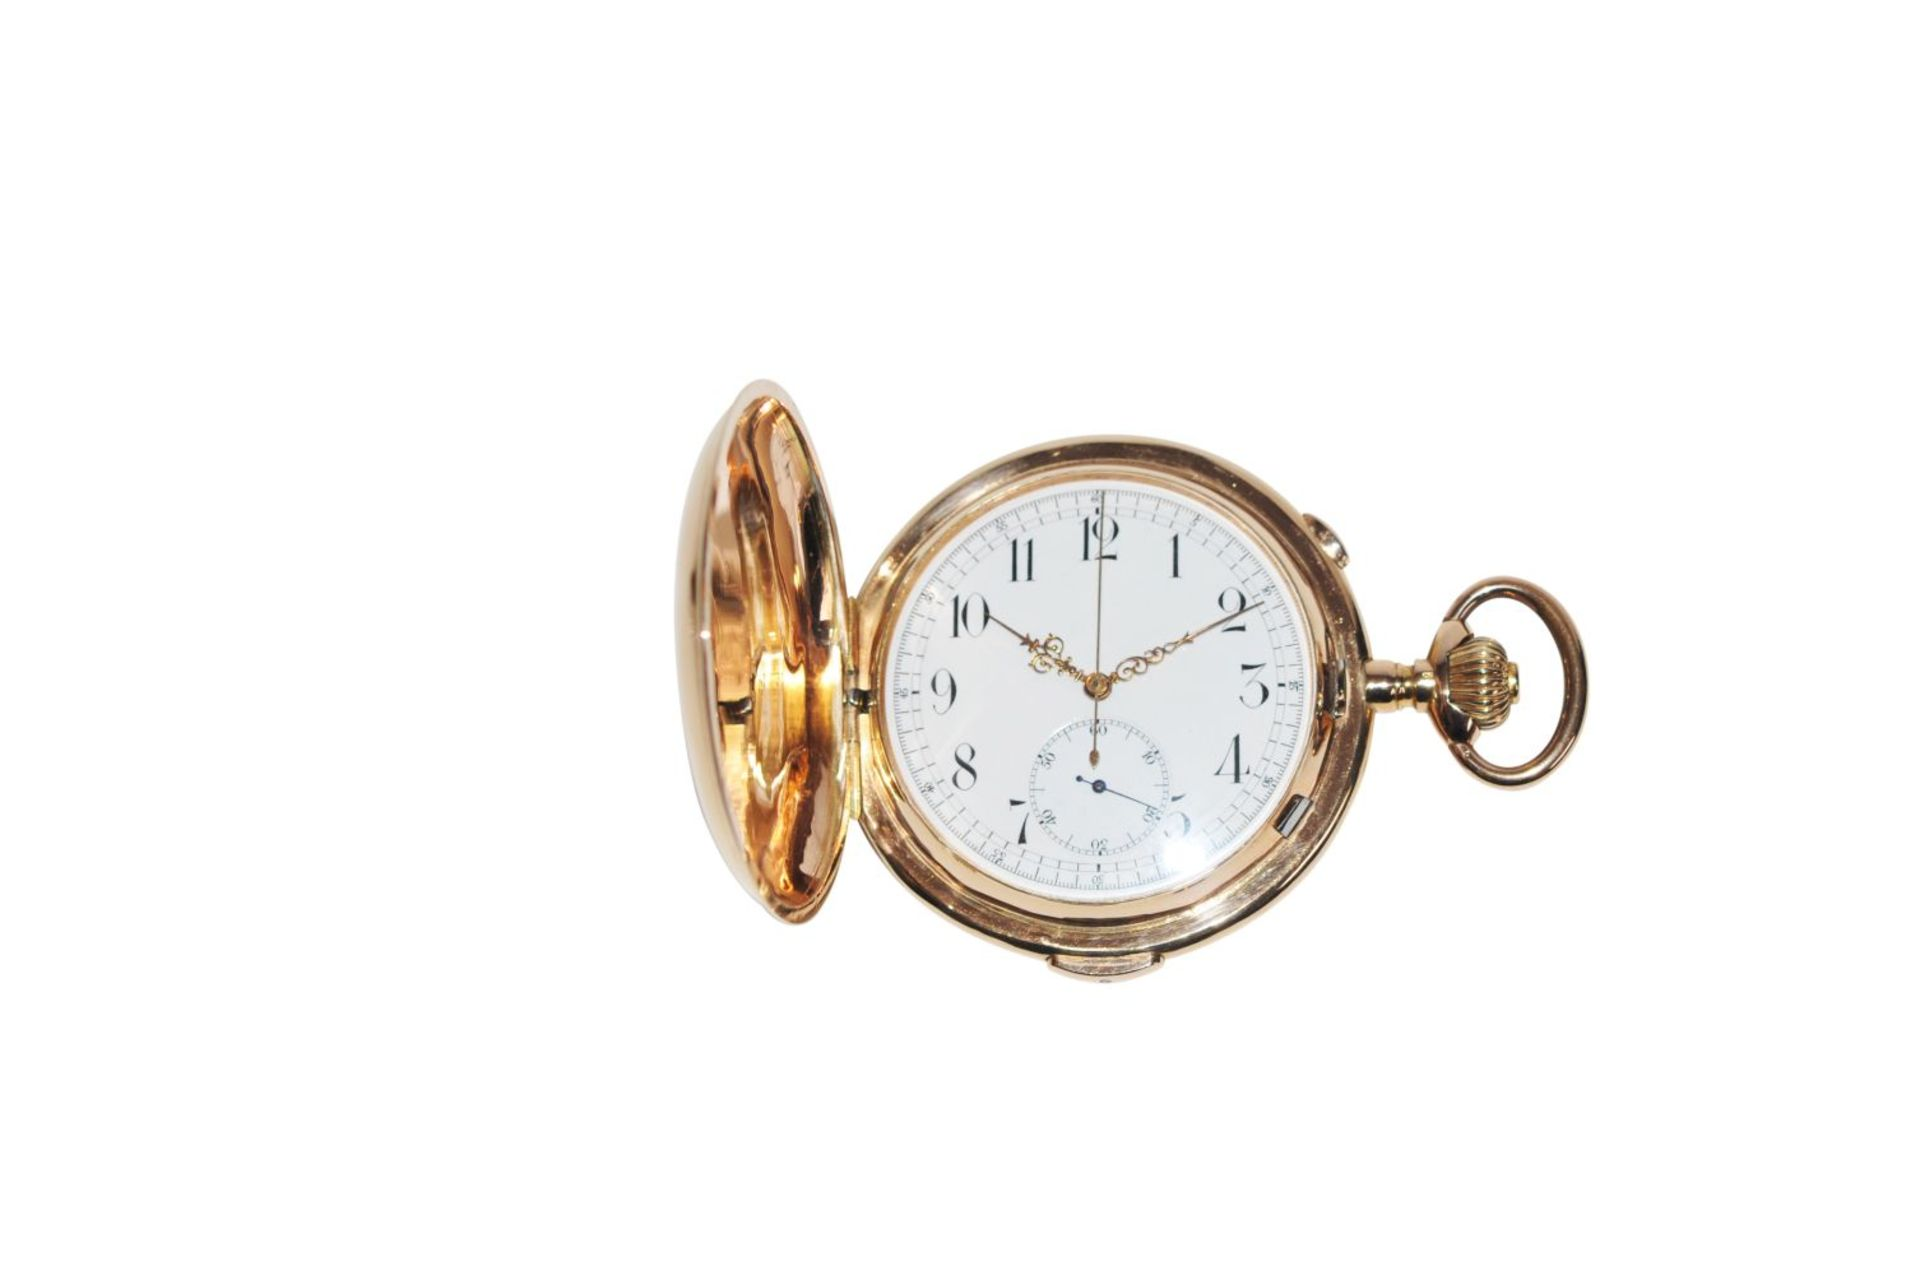 Los 82 - Quarter hour repeater pocket watch with chronographGold pocket watch with spring cover as well as